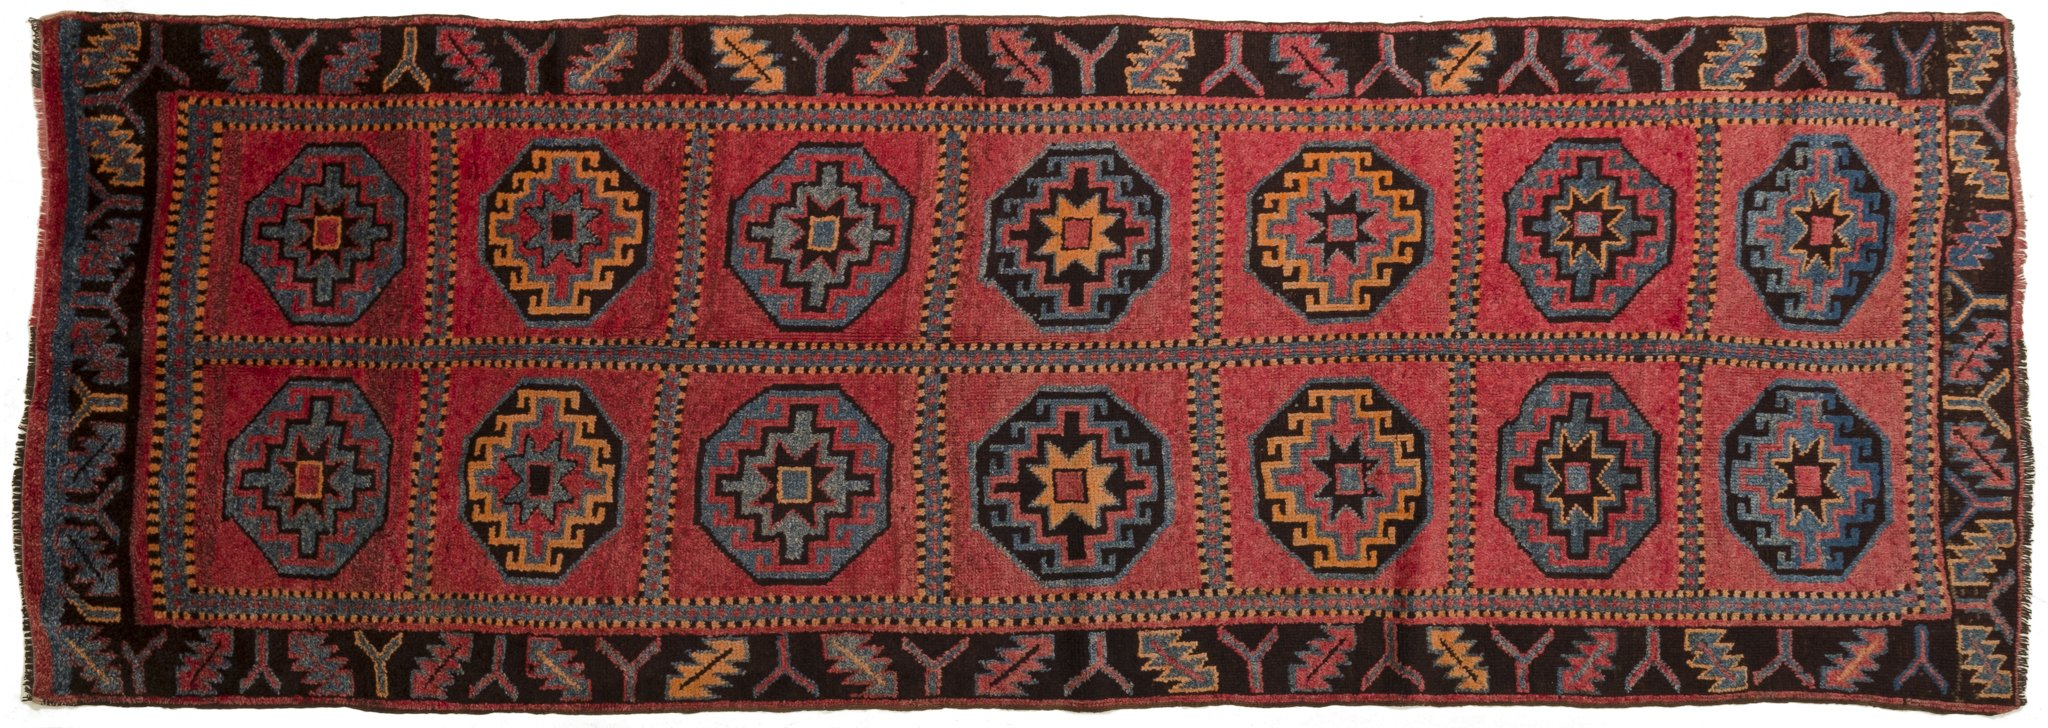 Vintage Turkish Runner Rug Fadhil